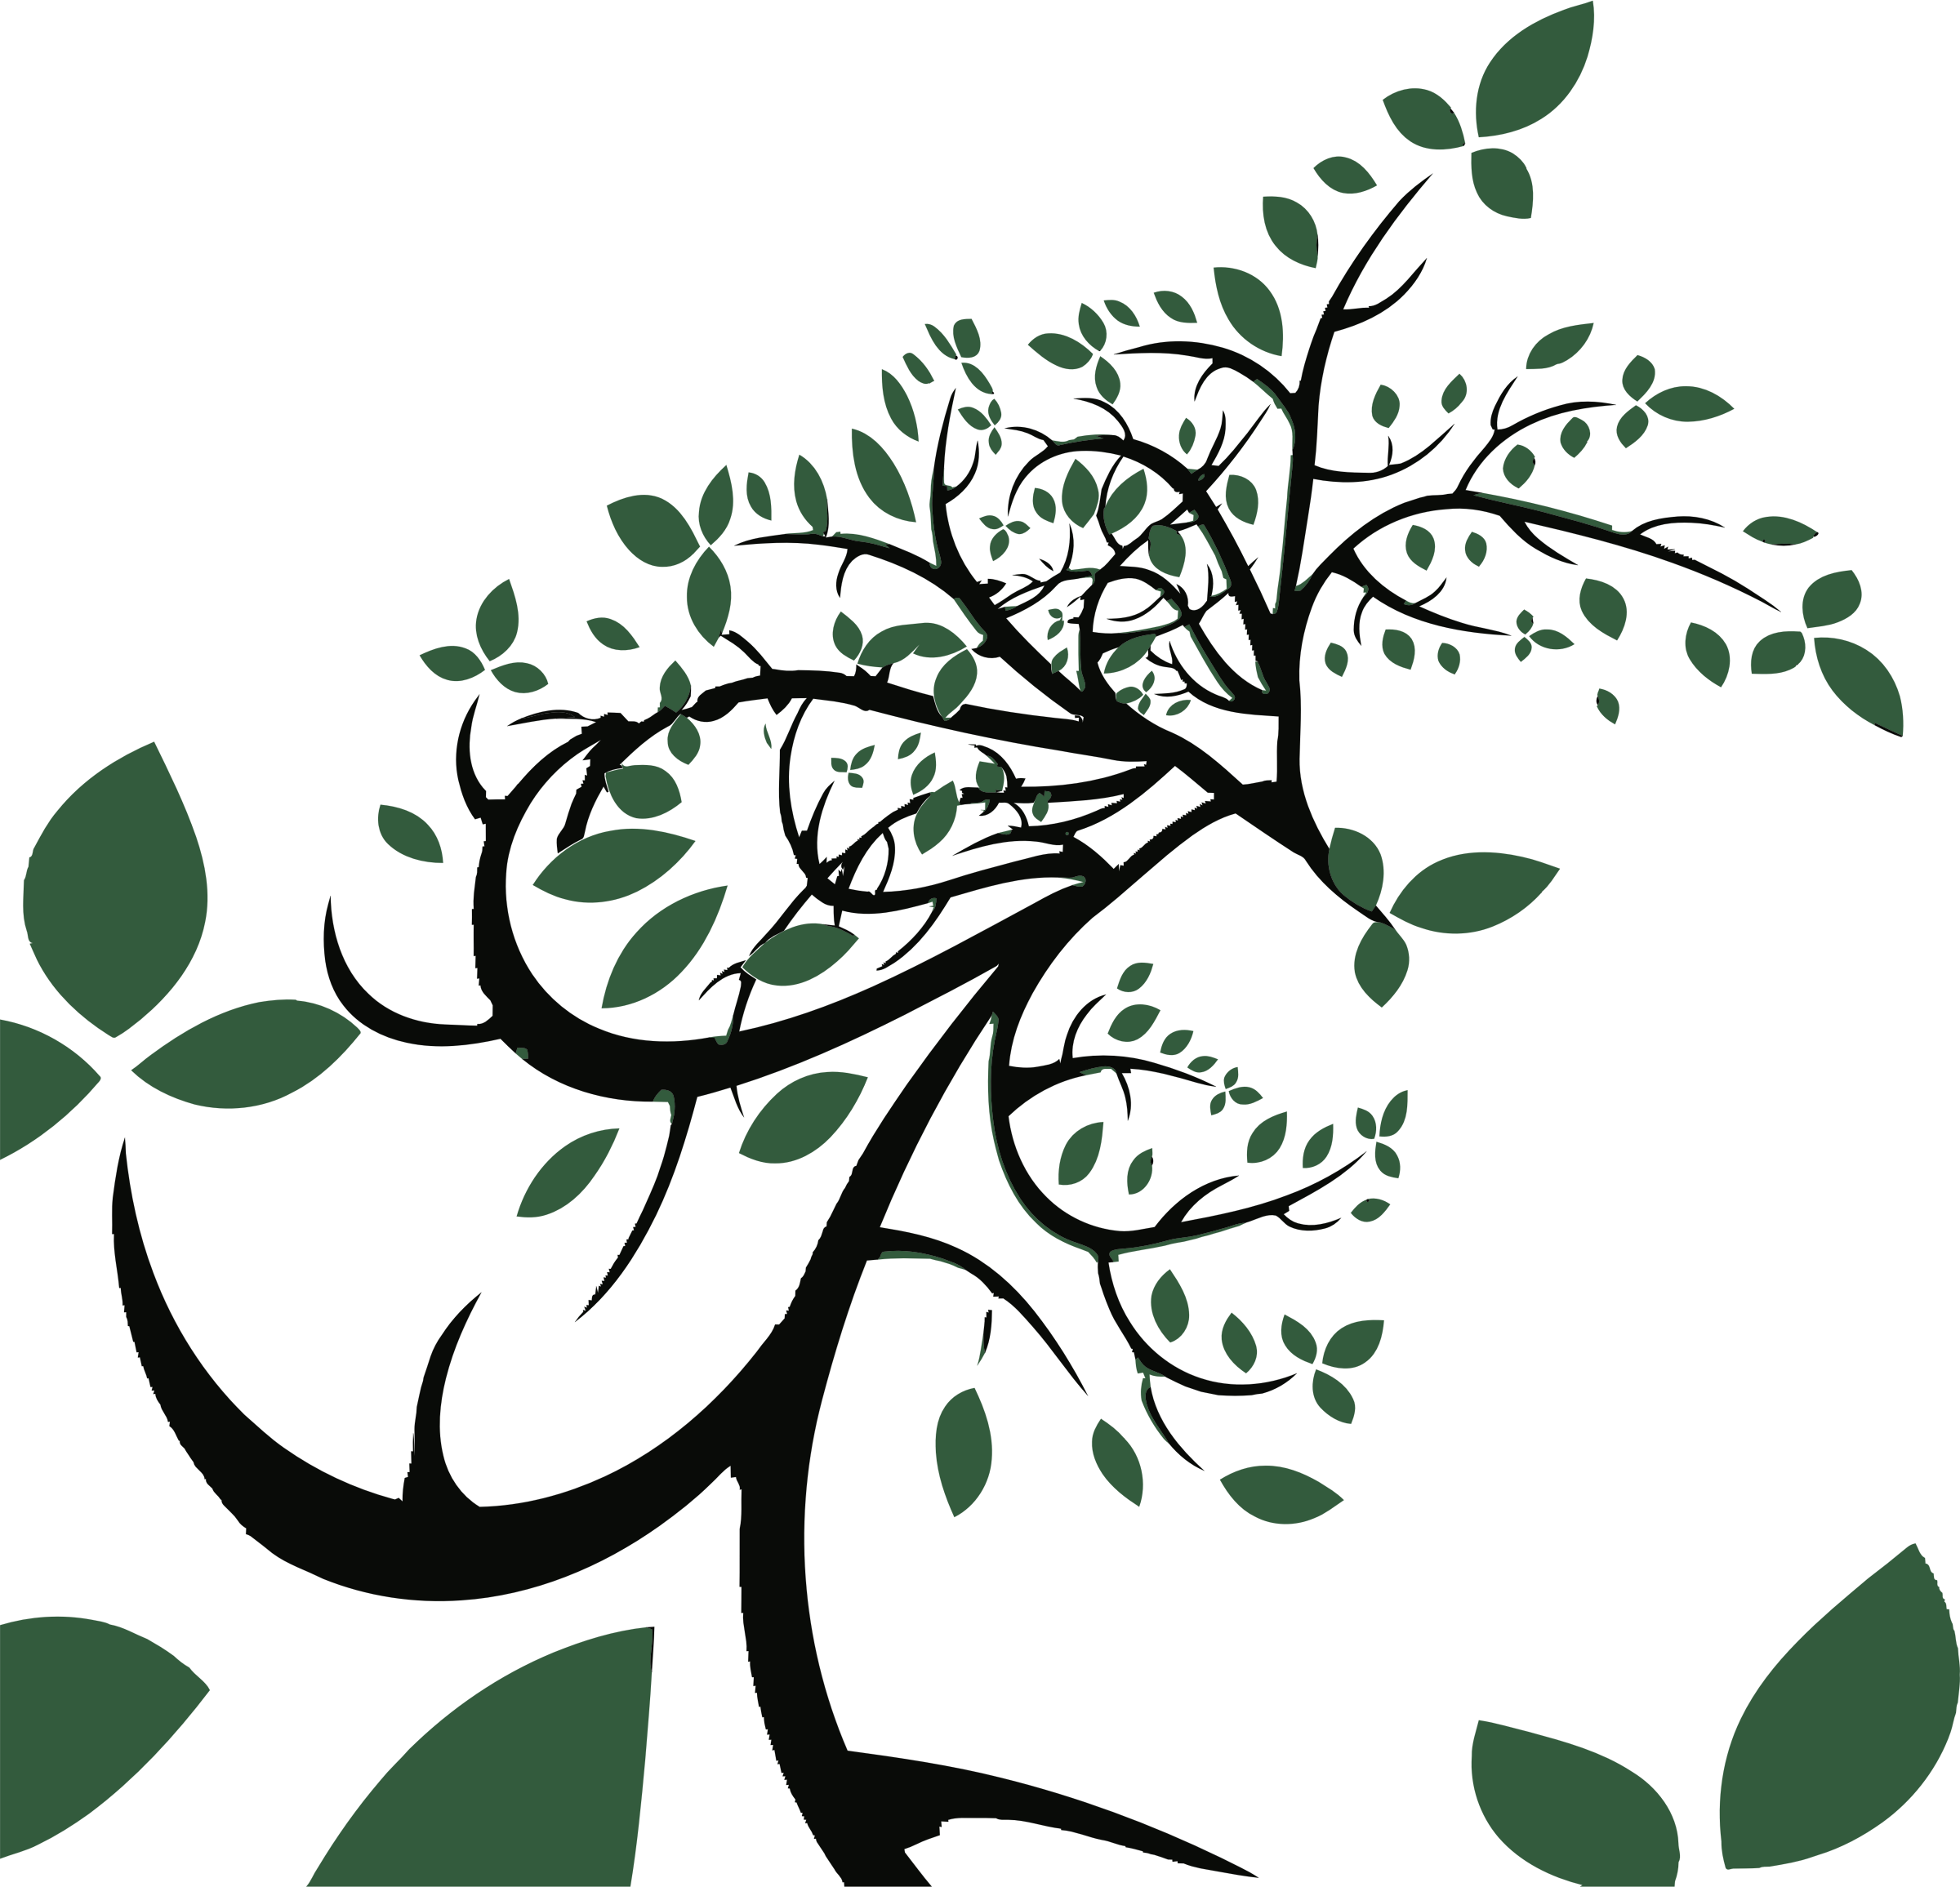 Clipart tree with leaves svg library stock Clipart - Stylized Tree With Leaves svg library stock